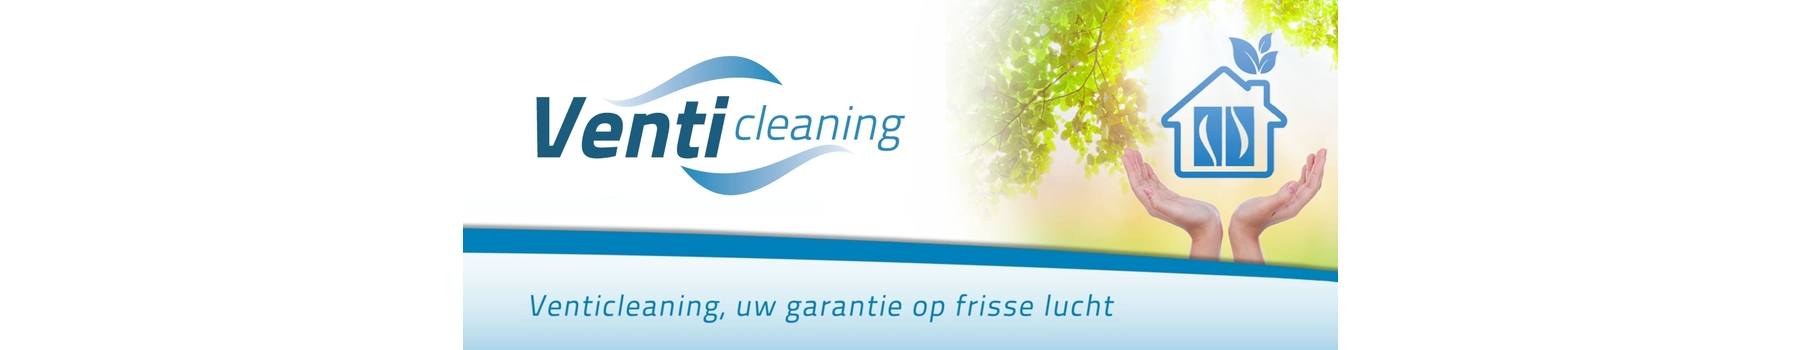 Laverge Cleaning